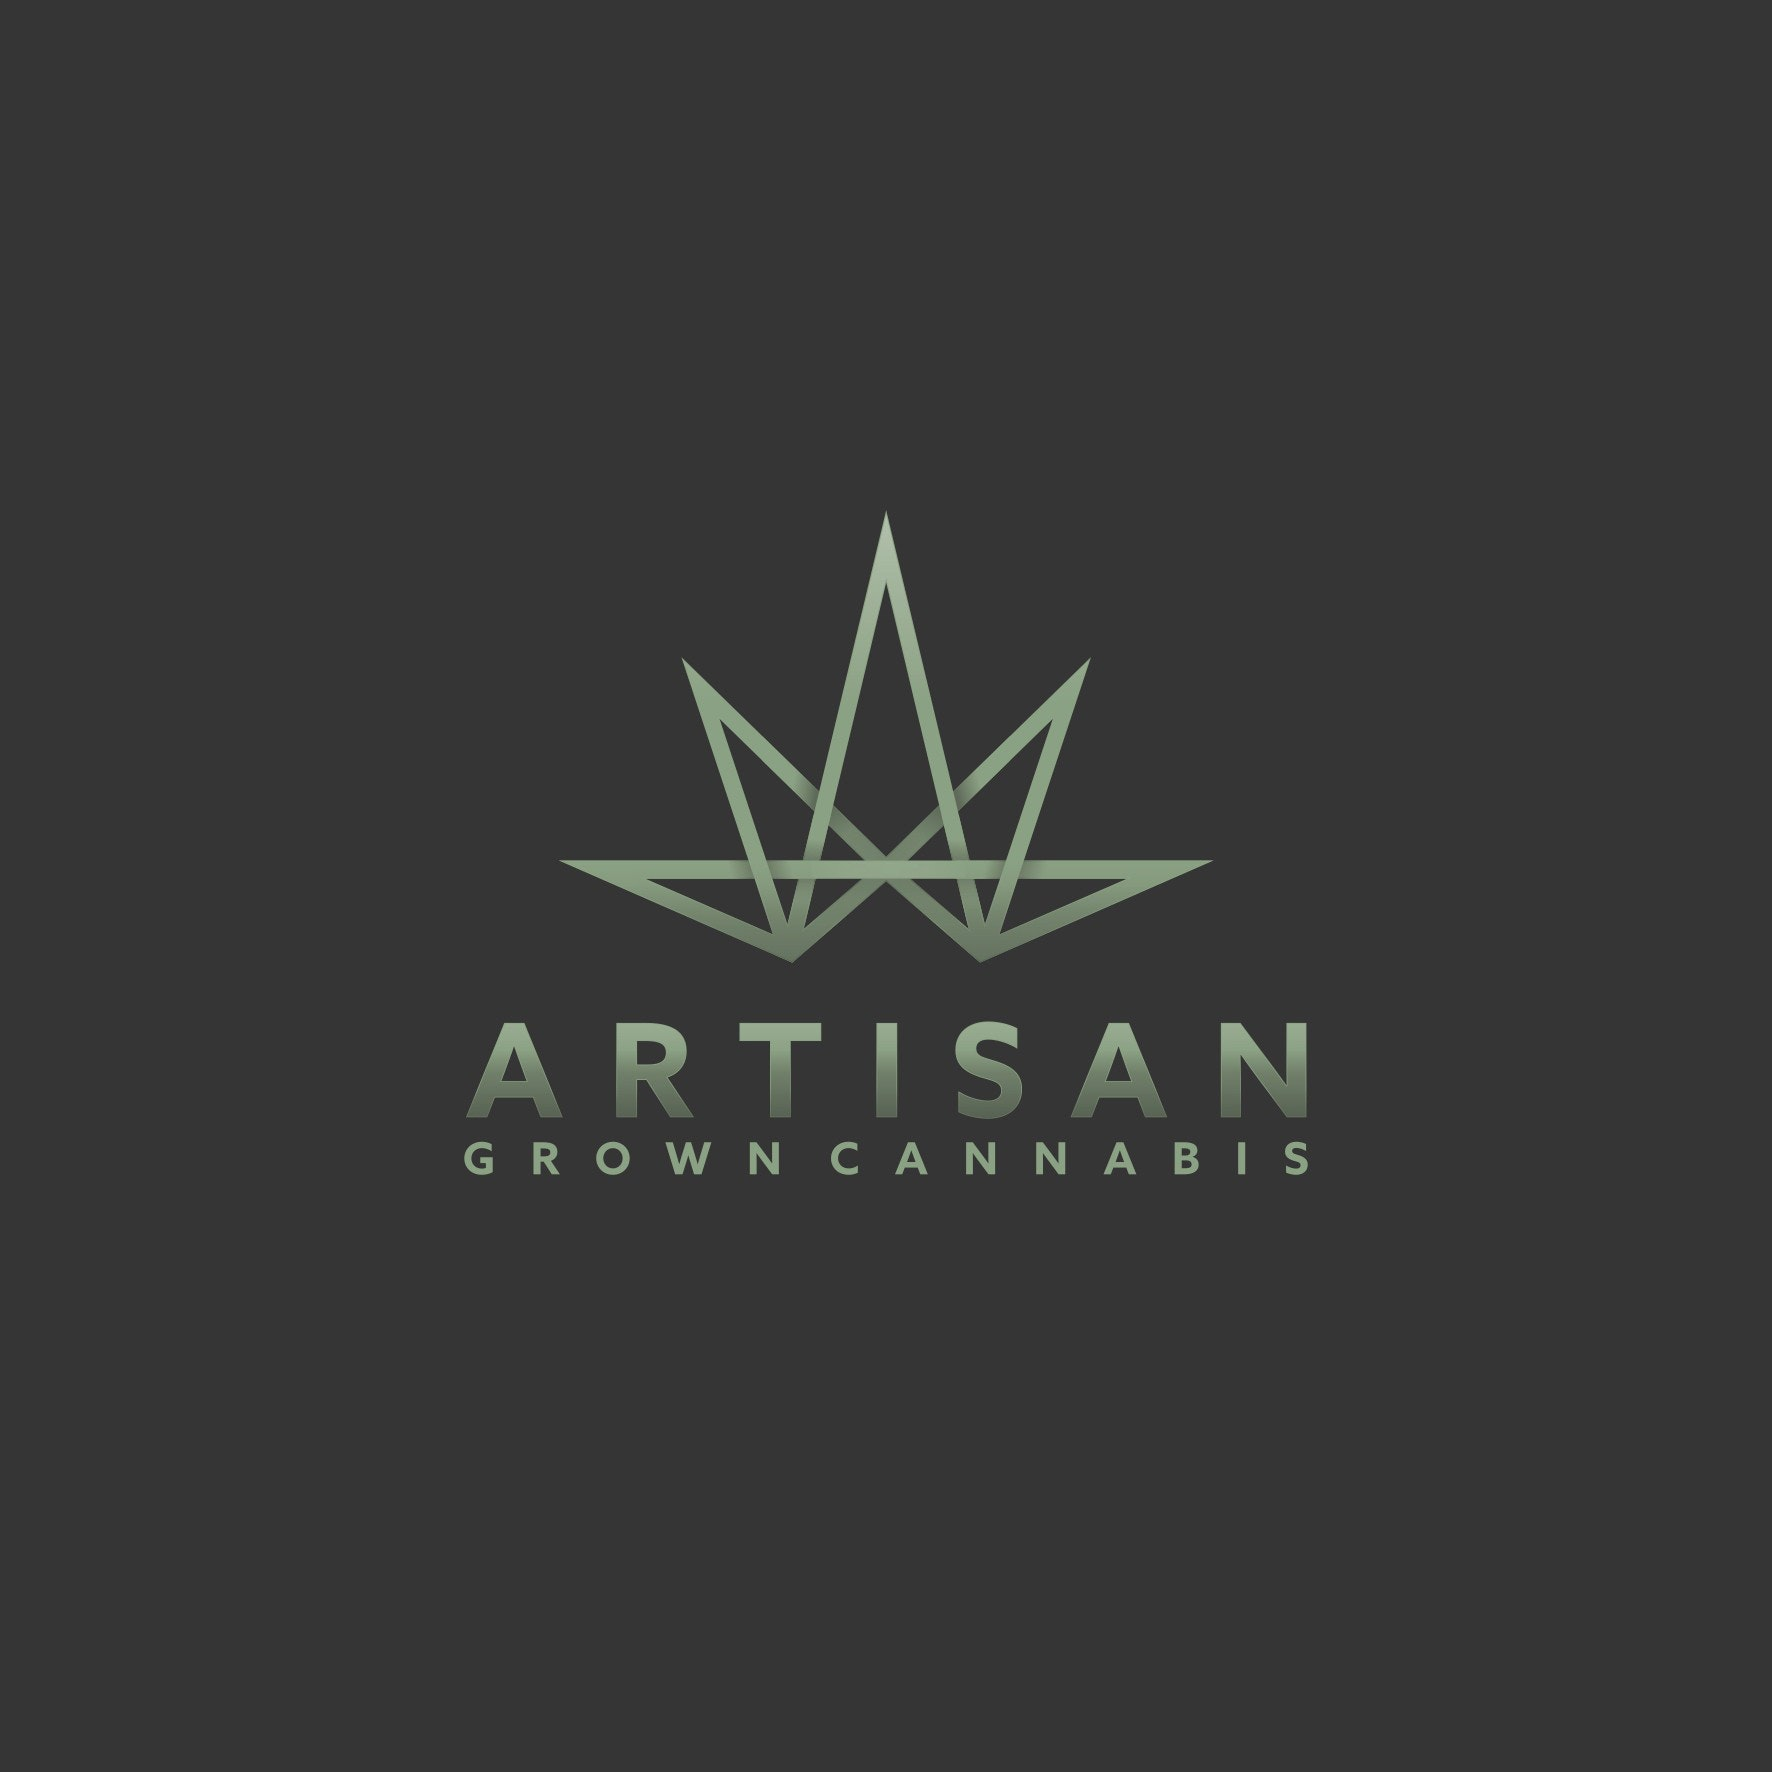 Modern cannabis logo design for Artisan